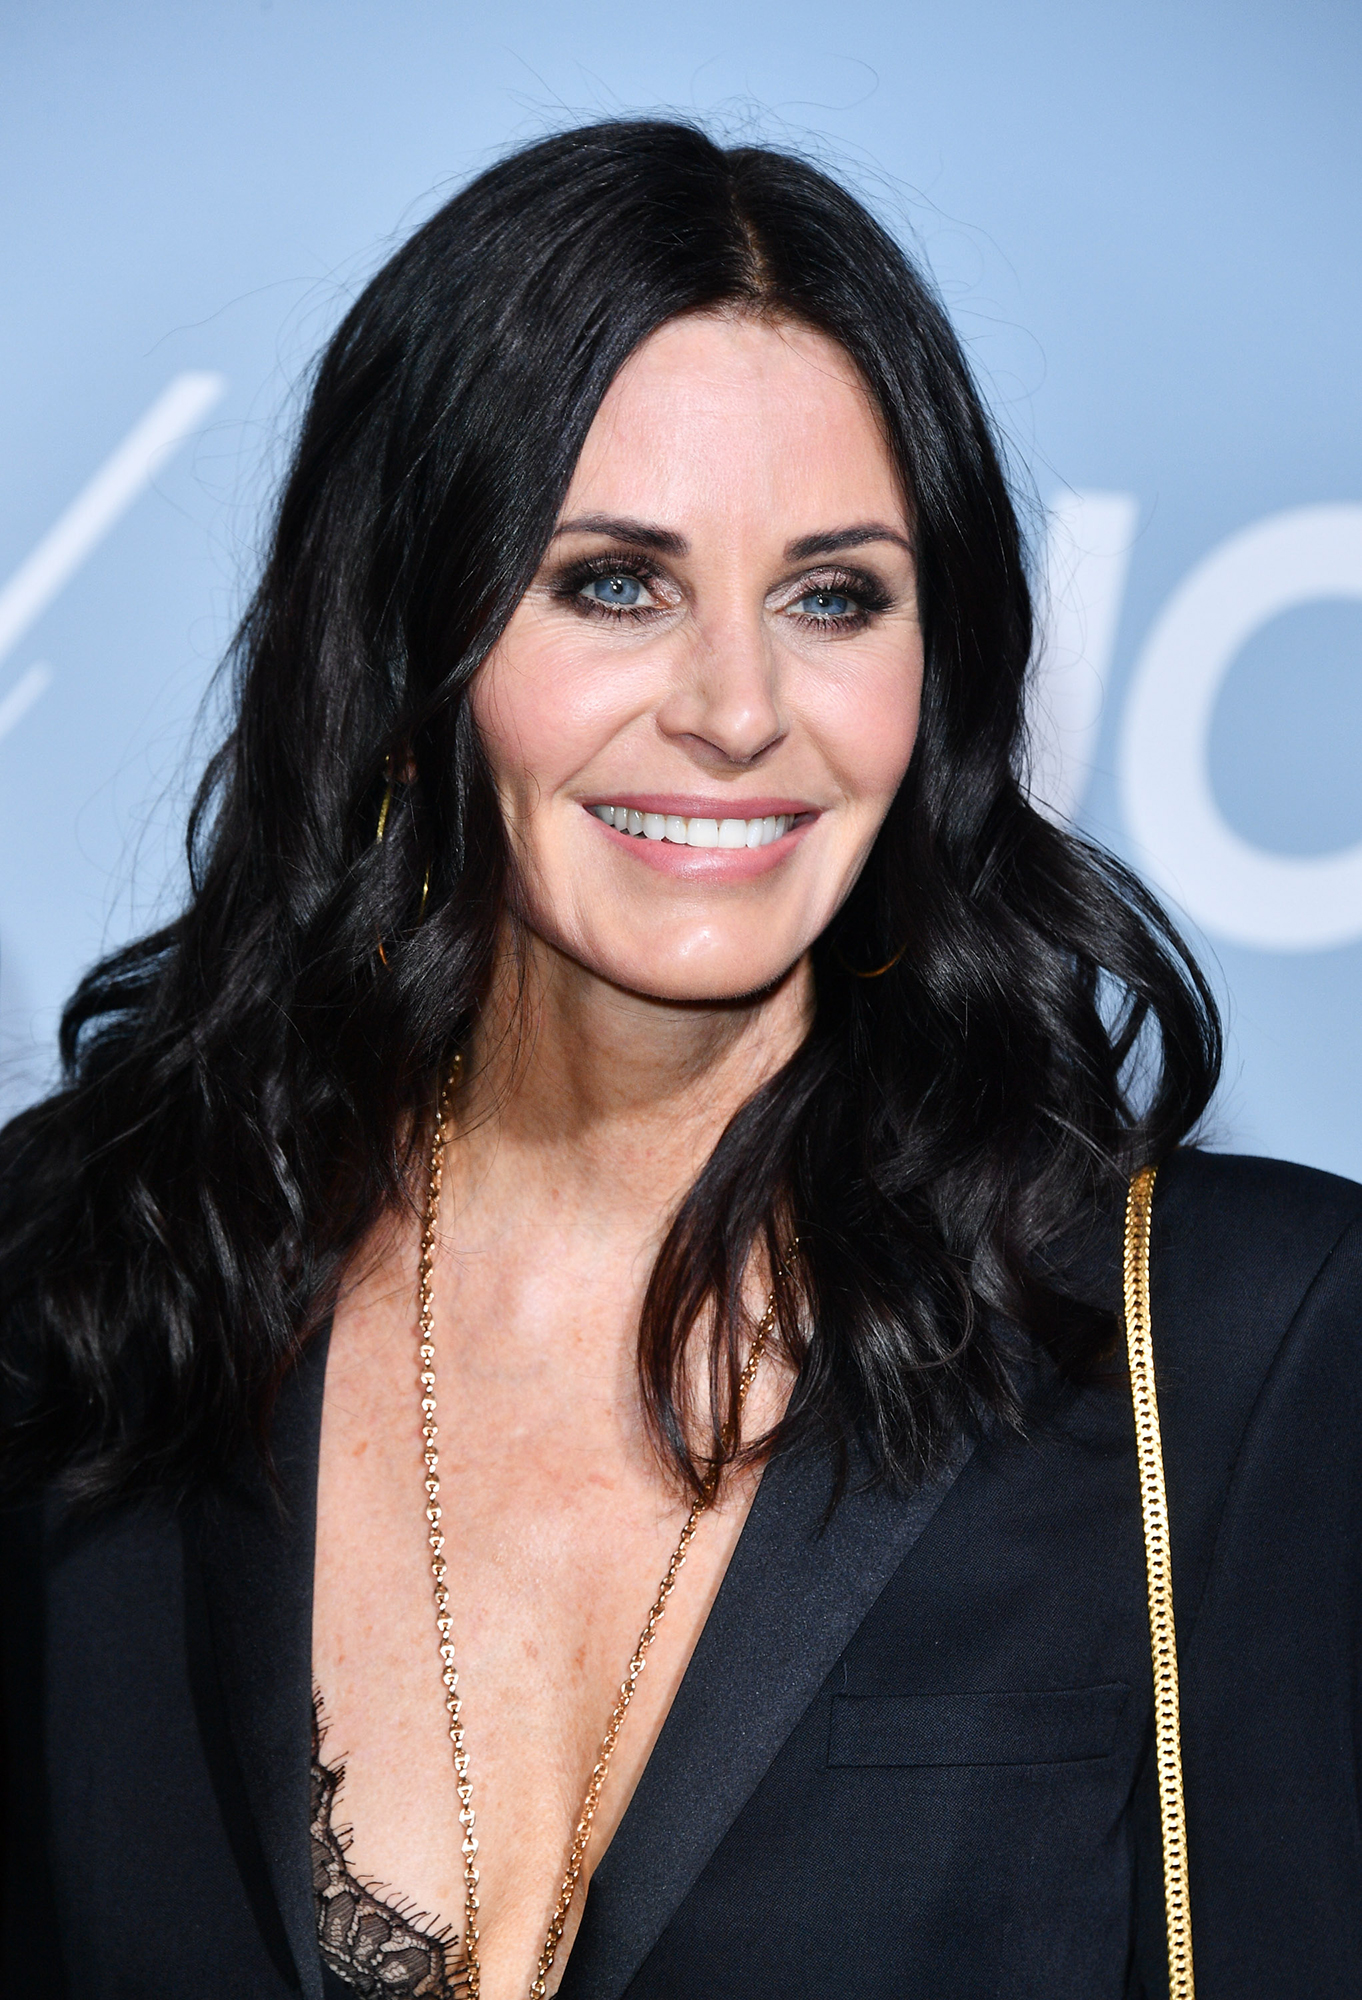 Jennifer Aniston Encouraged Courteney Cox to Post Adorable 'Friends' Apartment Video - Courteney Cox